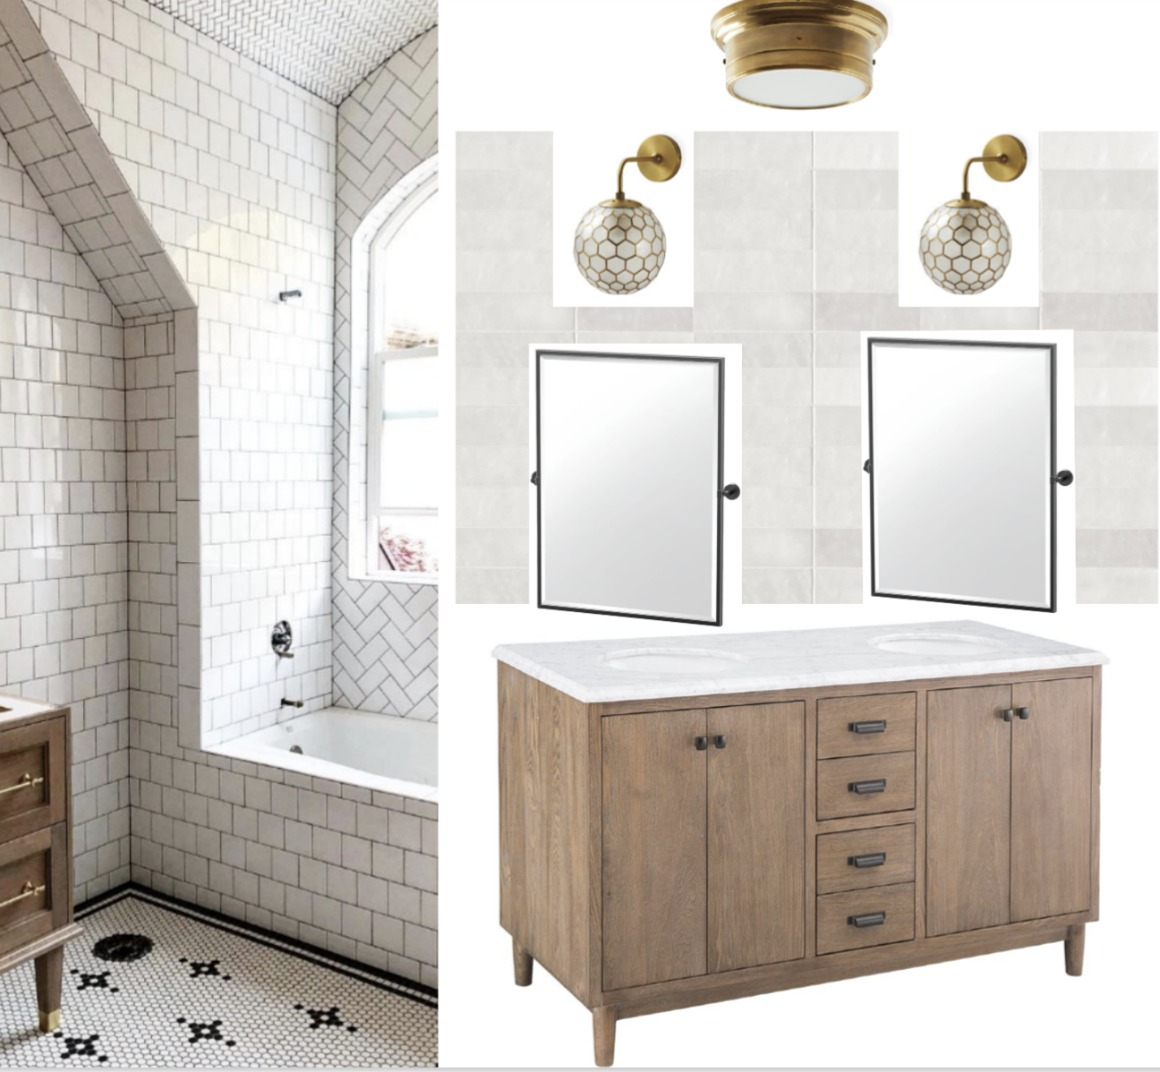 Bathroom Remodel- Favorite Affordable Vanities and Plan